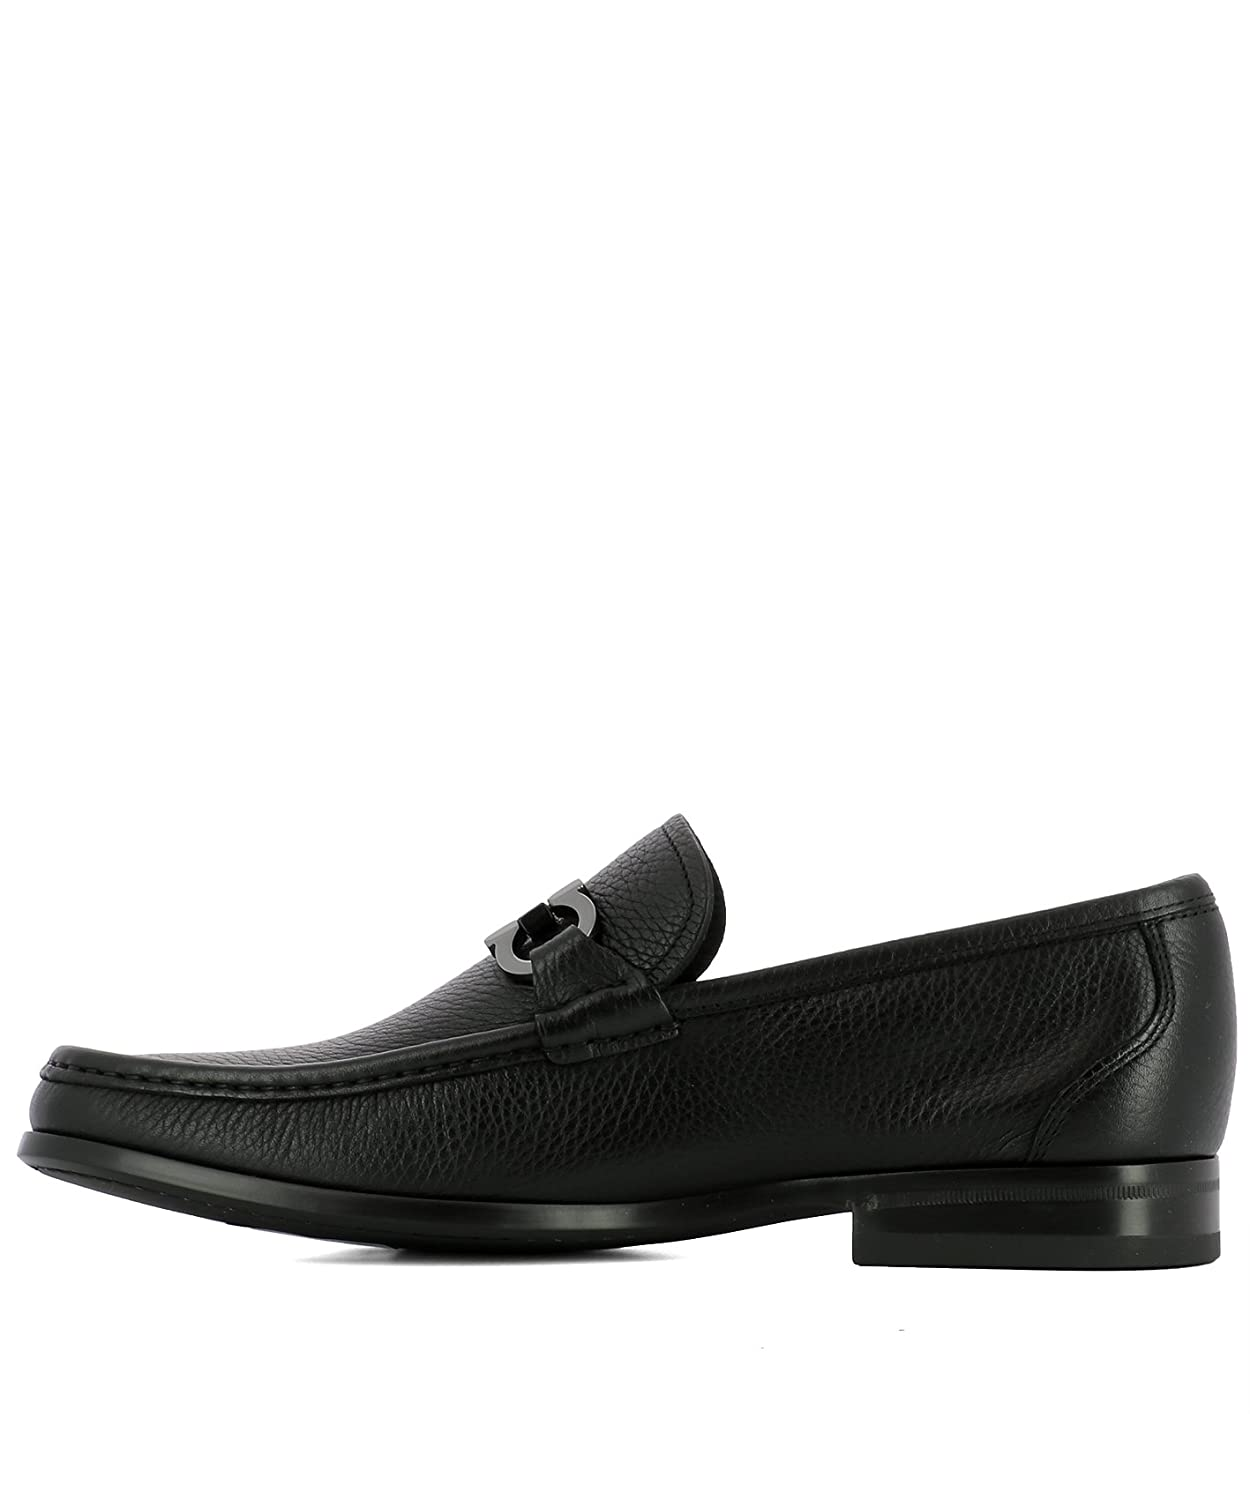 Salvatore Ferragamo - Mocasines para hombre negro negro IT - Marke Größe, color negro, talla 38.5 IT - Marke Größe 5.5: Amazon.es: Zapatos y complementos